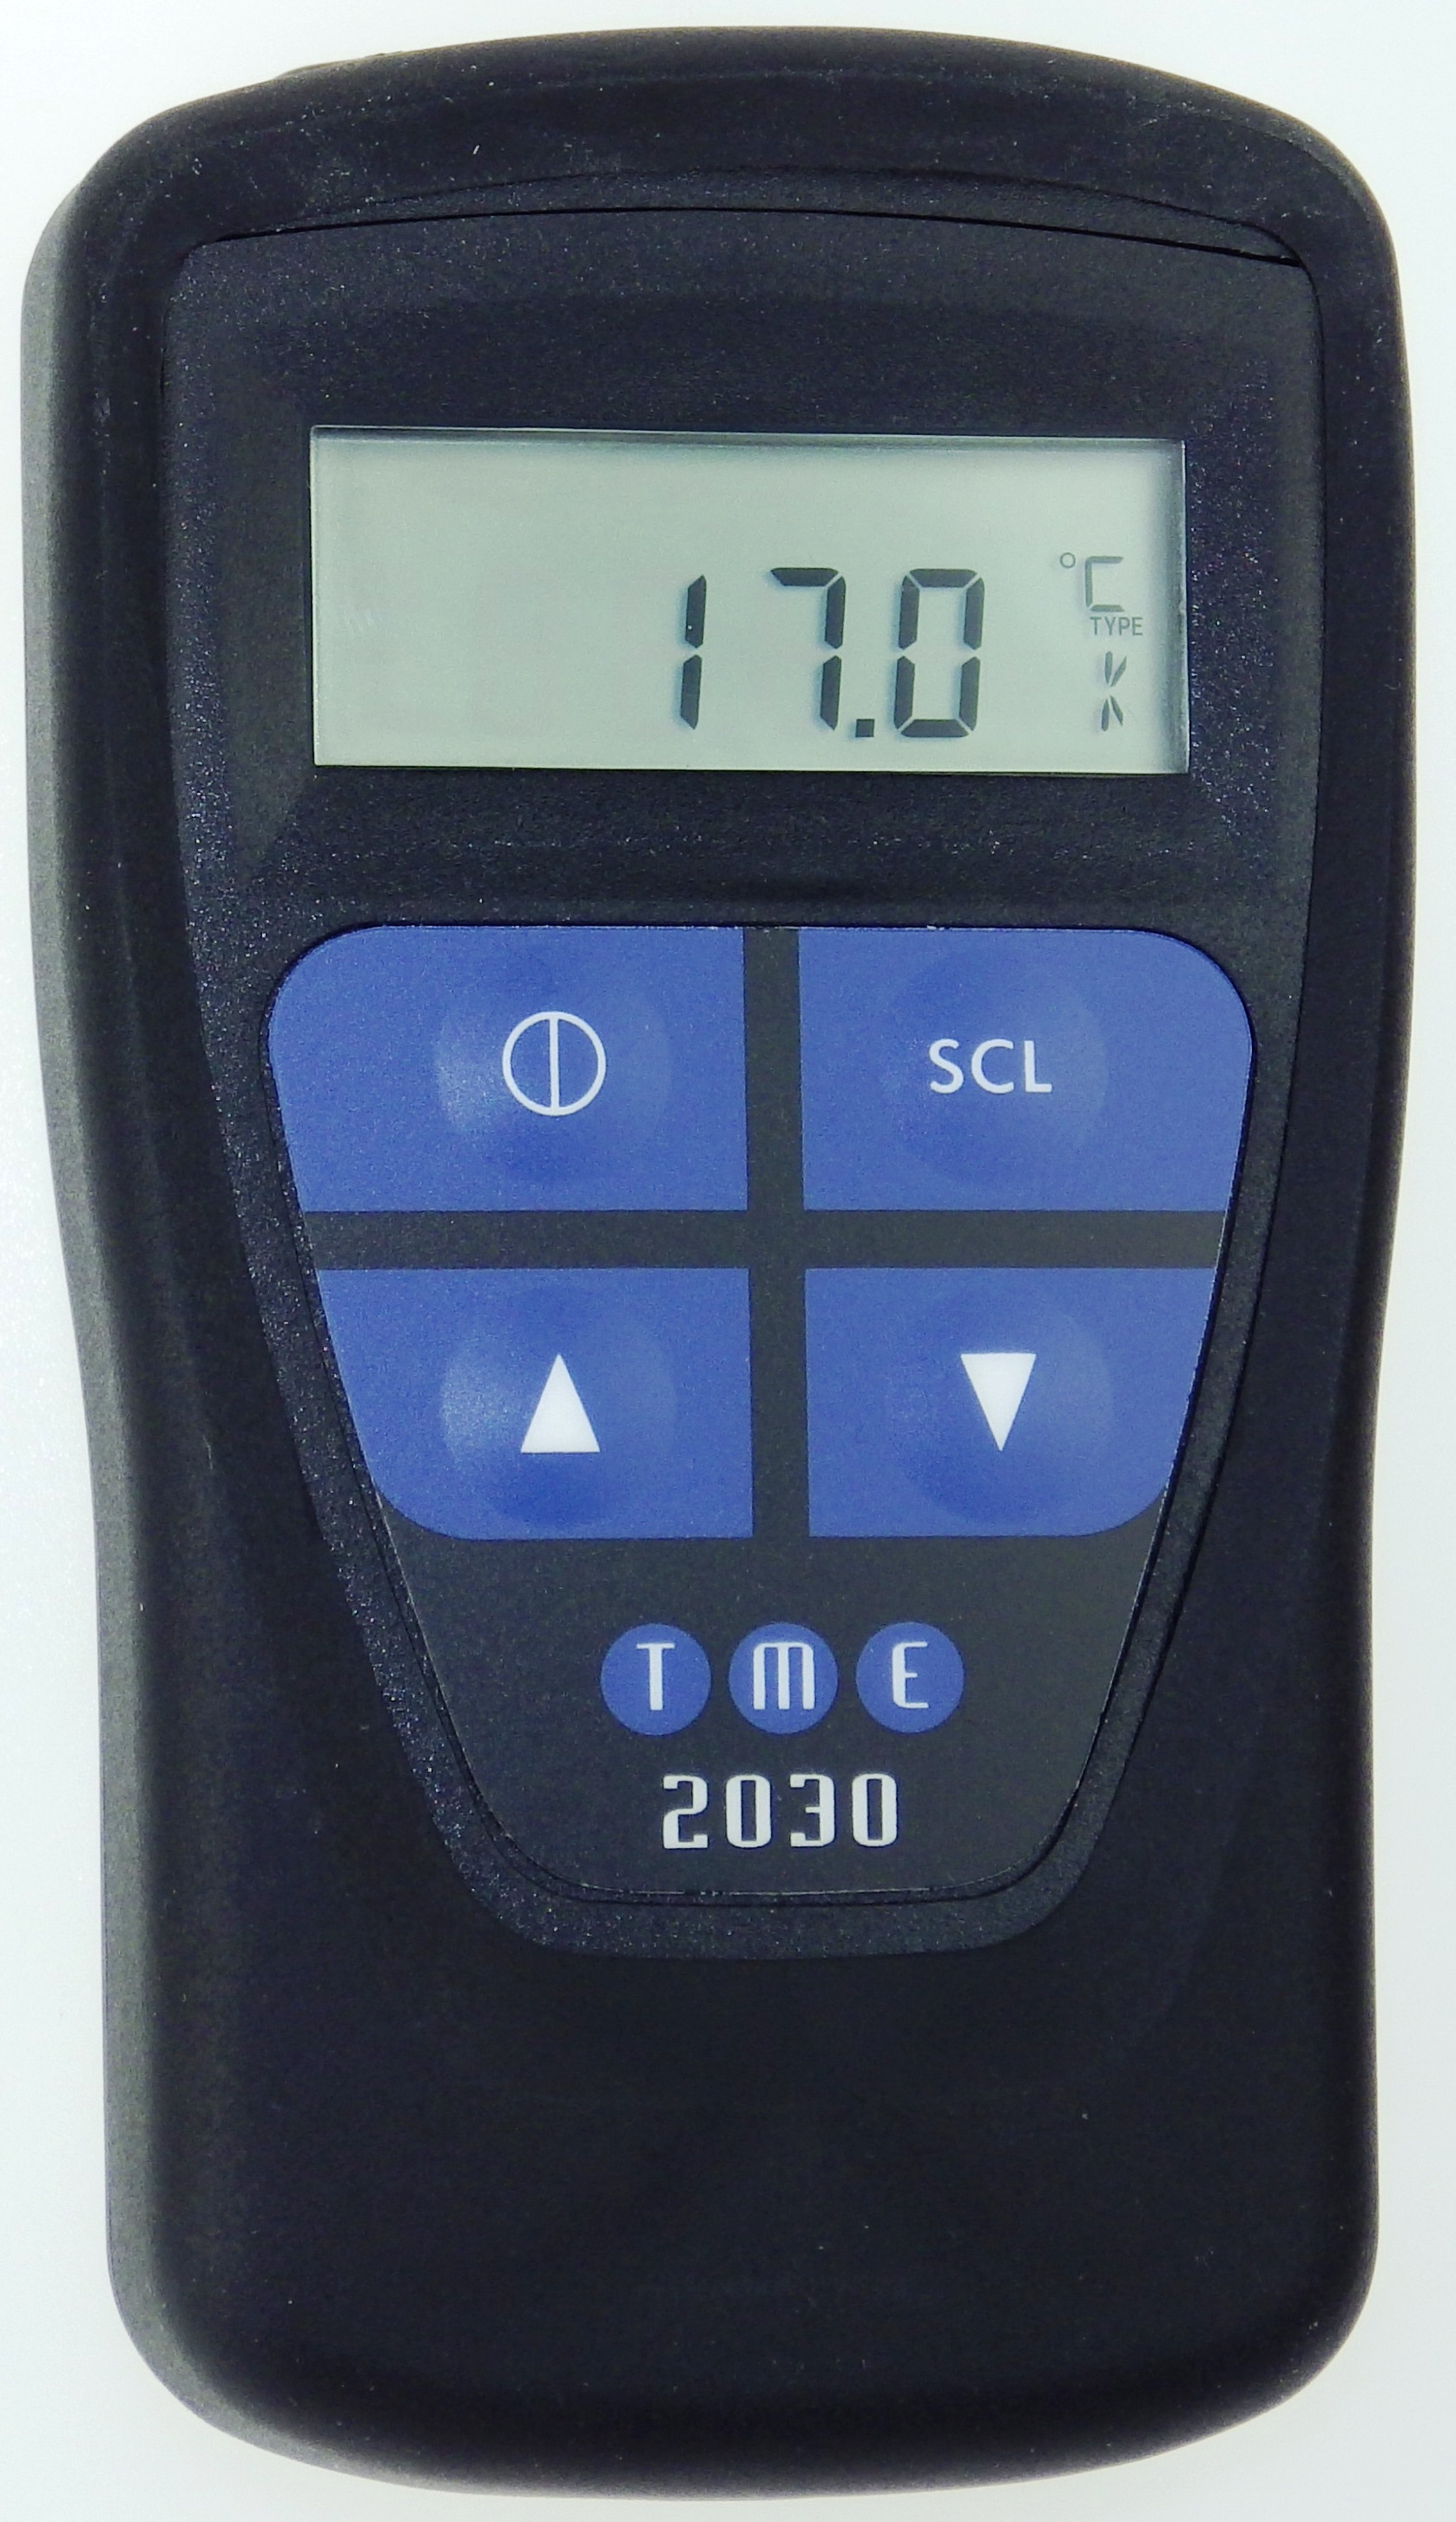 This Waterproof, Self-Calibrating Thermometer/Simulator can simulate the thermocouple output, and ha...